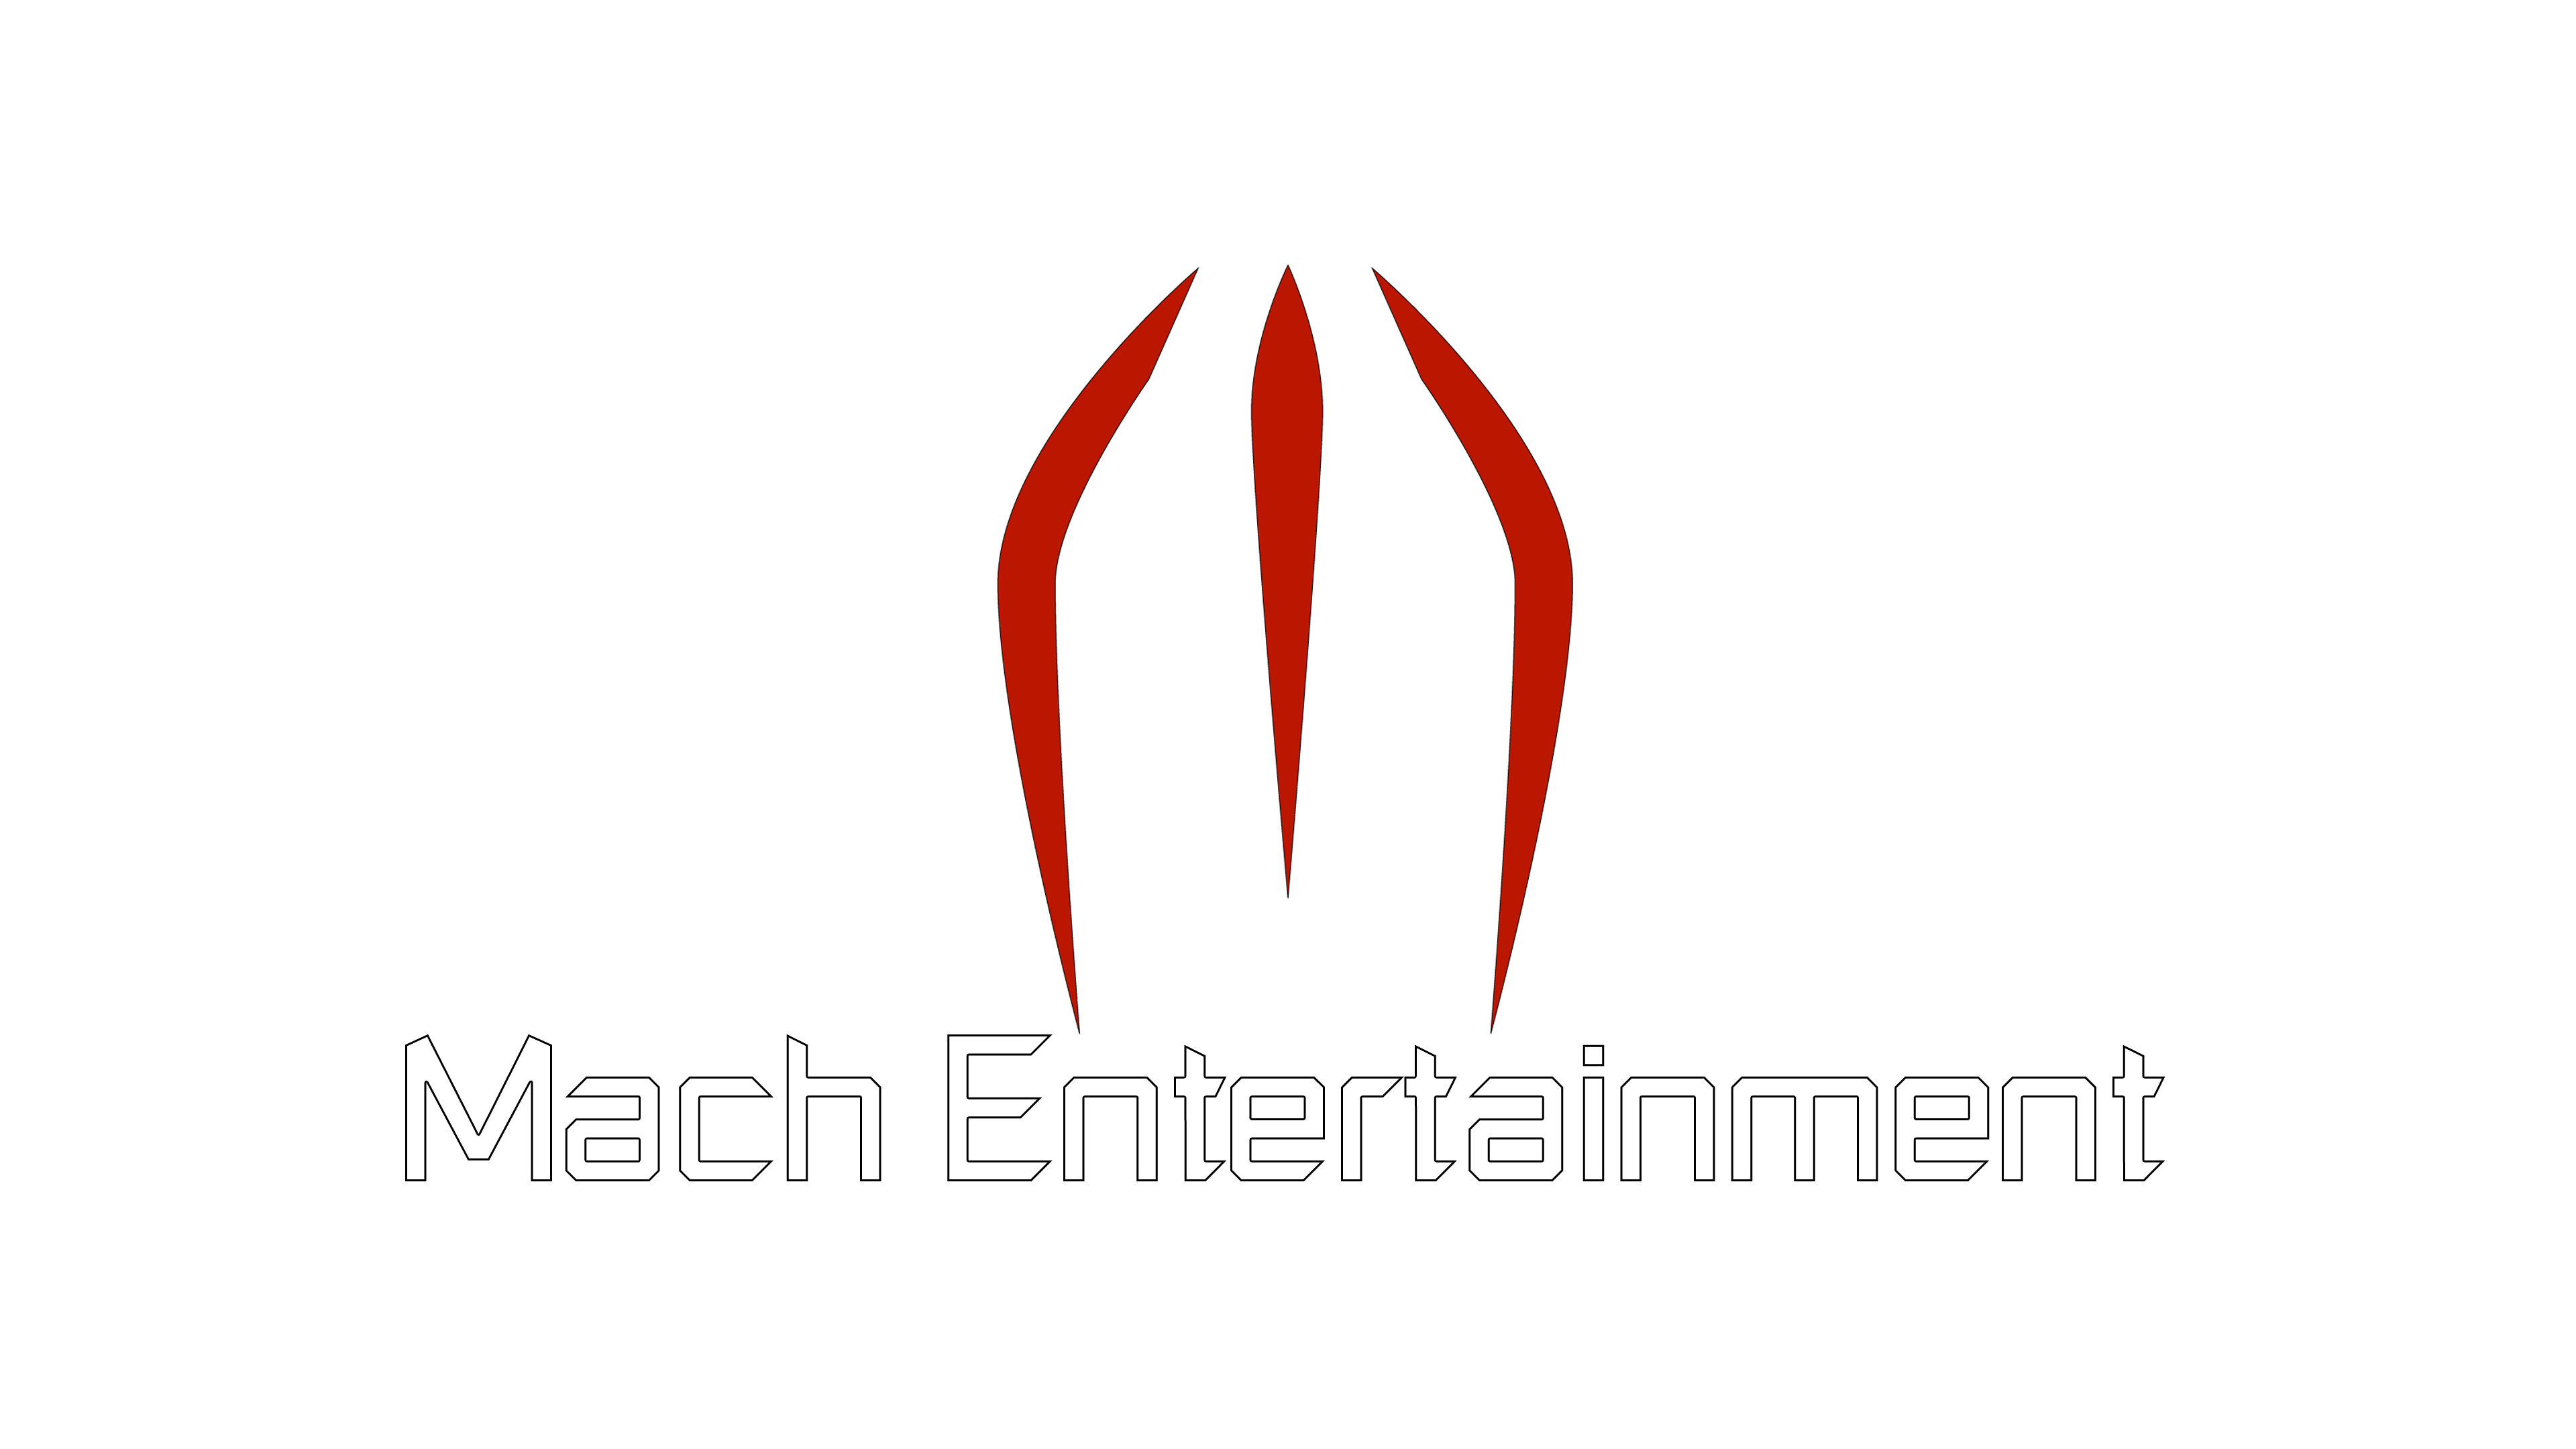 machentertainment.com